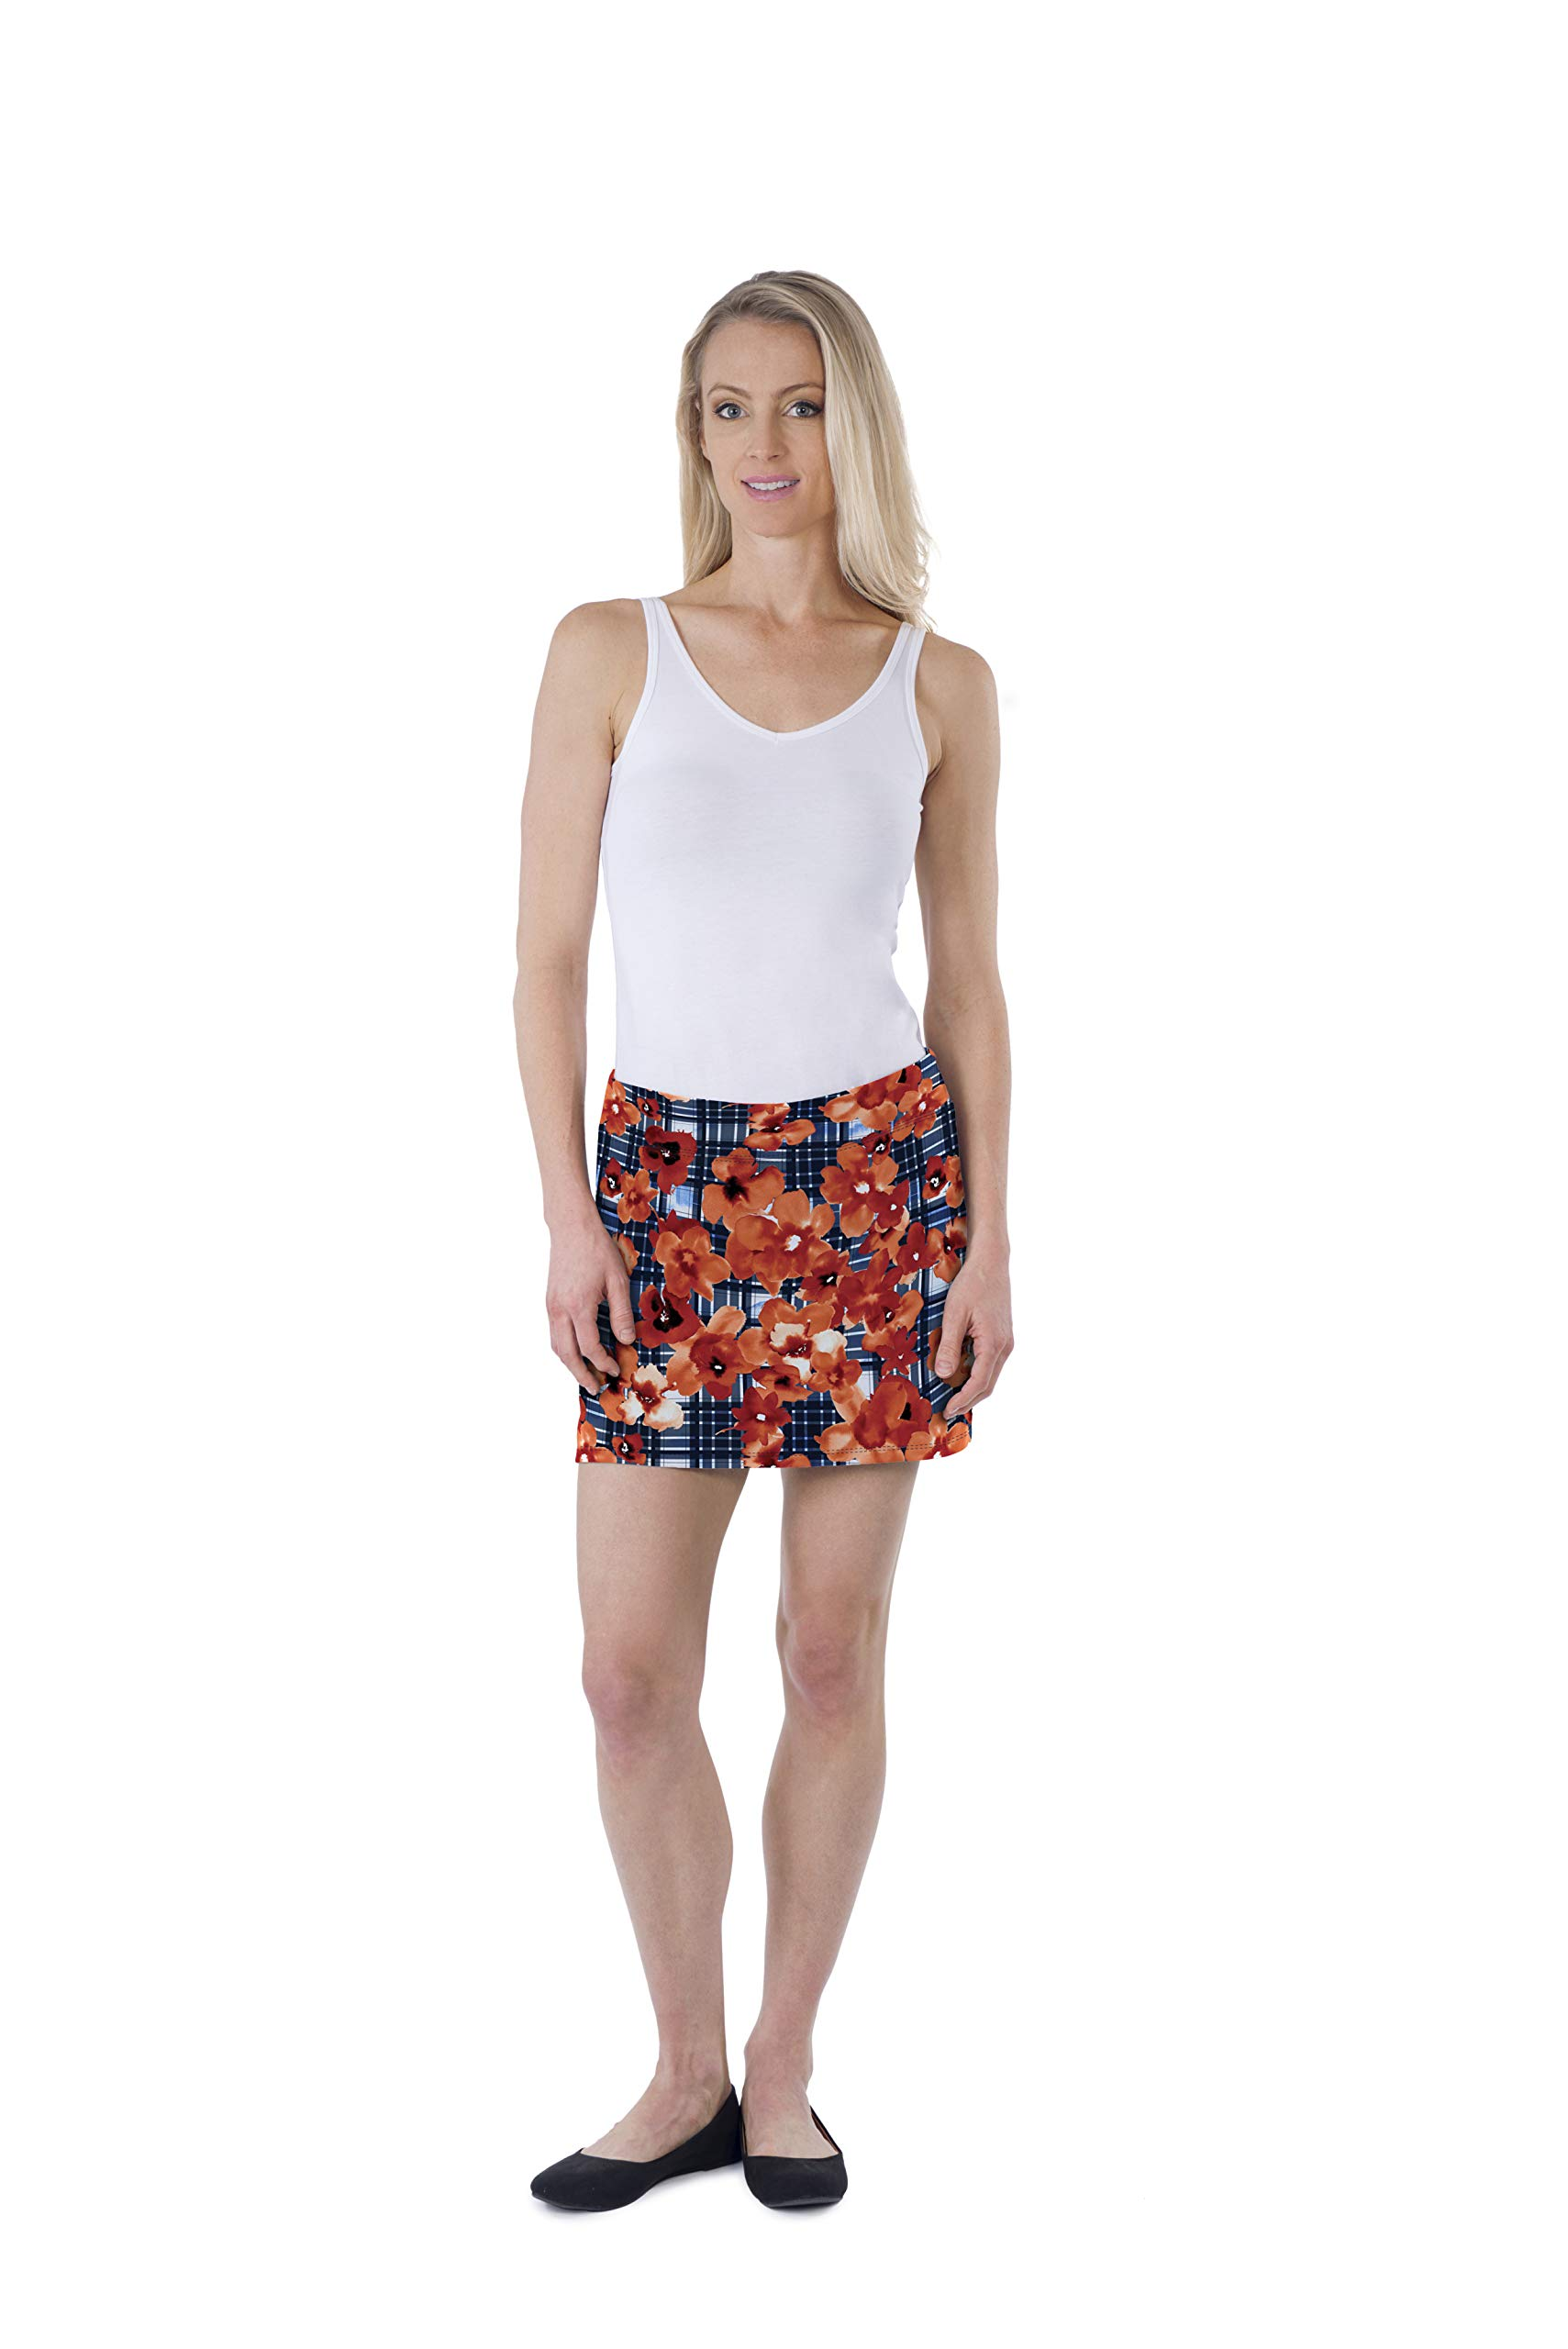 Colorado Clothing Women's Everyday Skort (Floral Gifted, XS) by Colorado Clothing